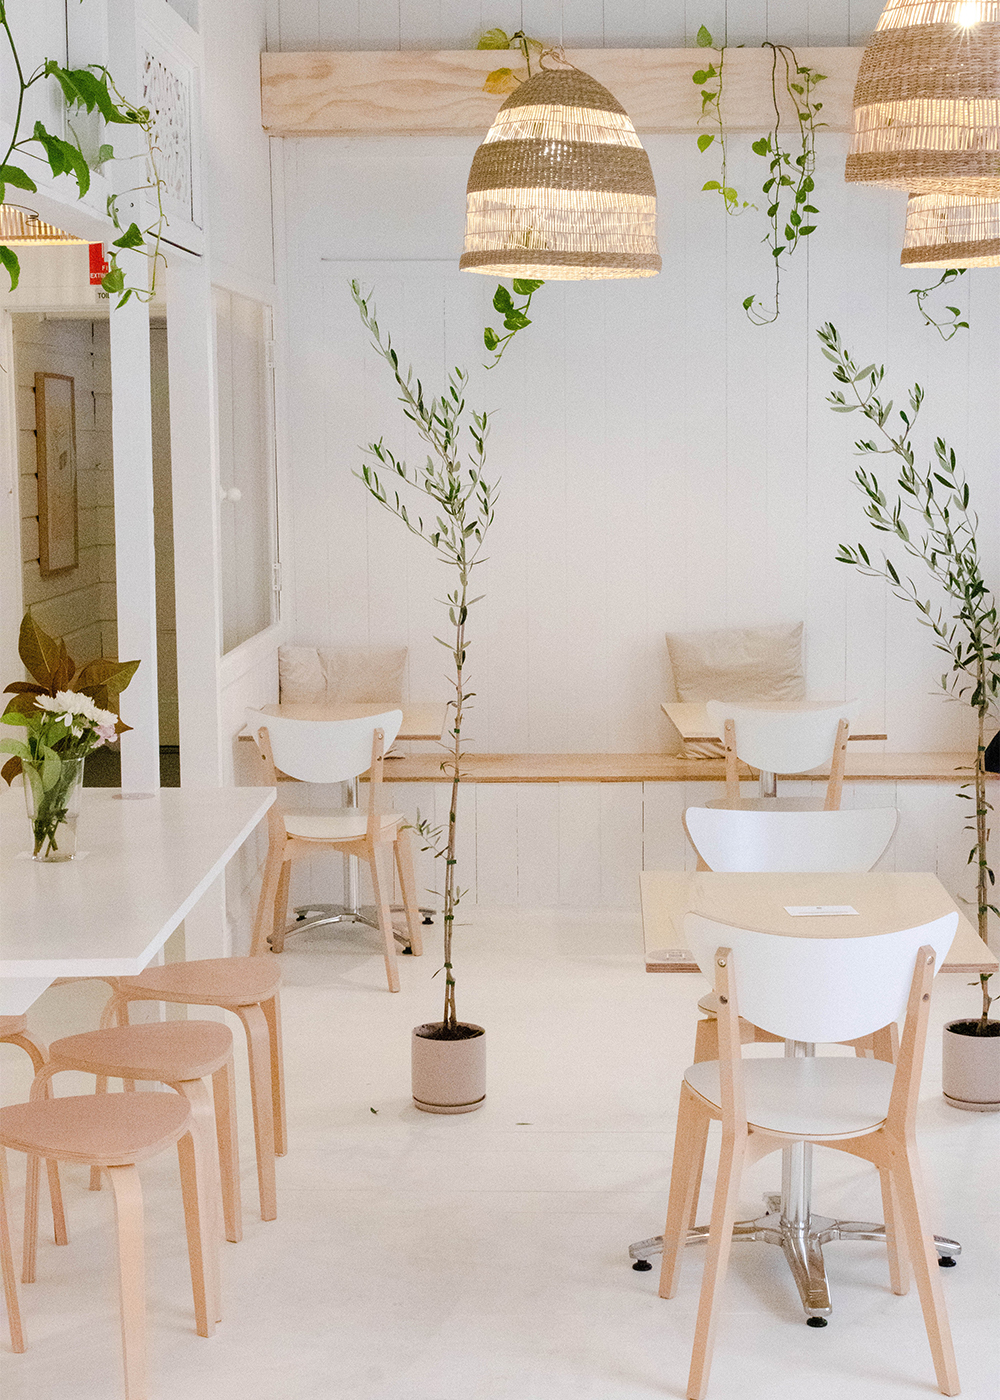 white interiors with plants at Plant Vibes Cafe